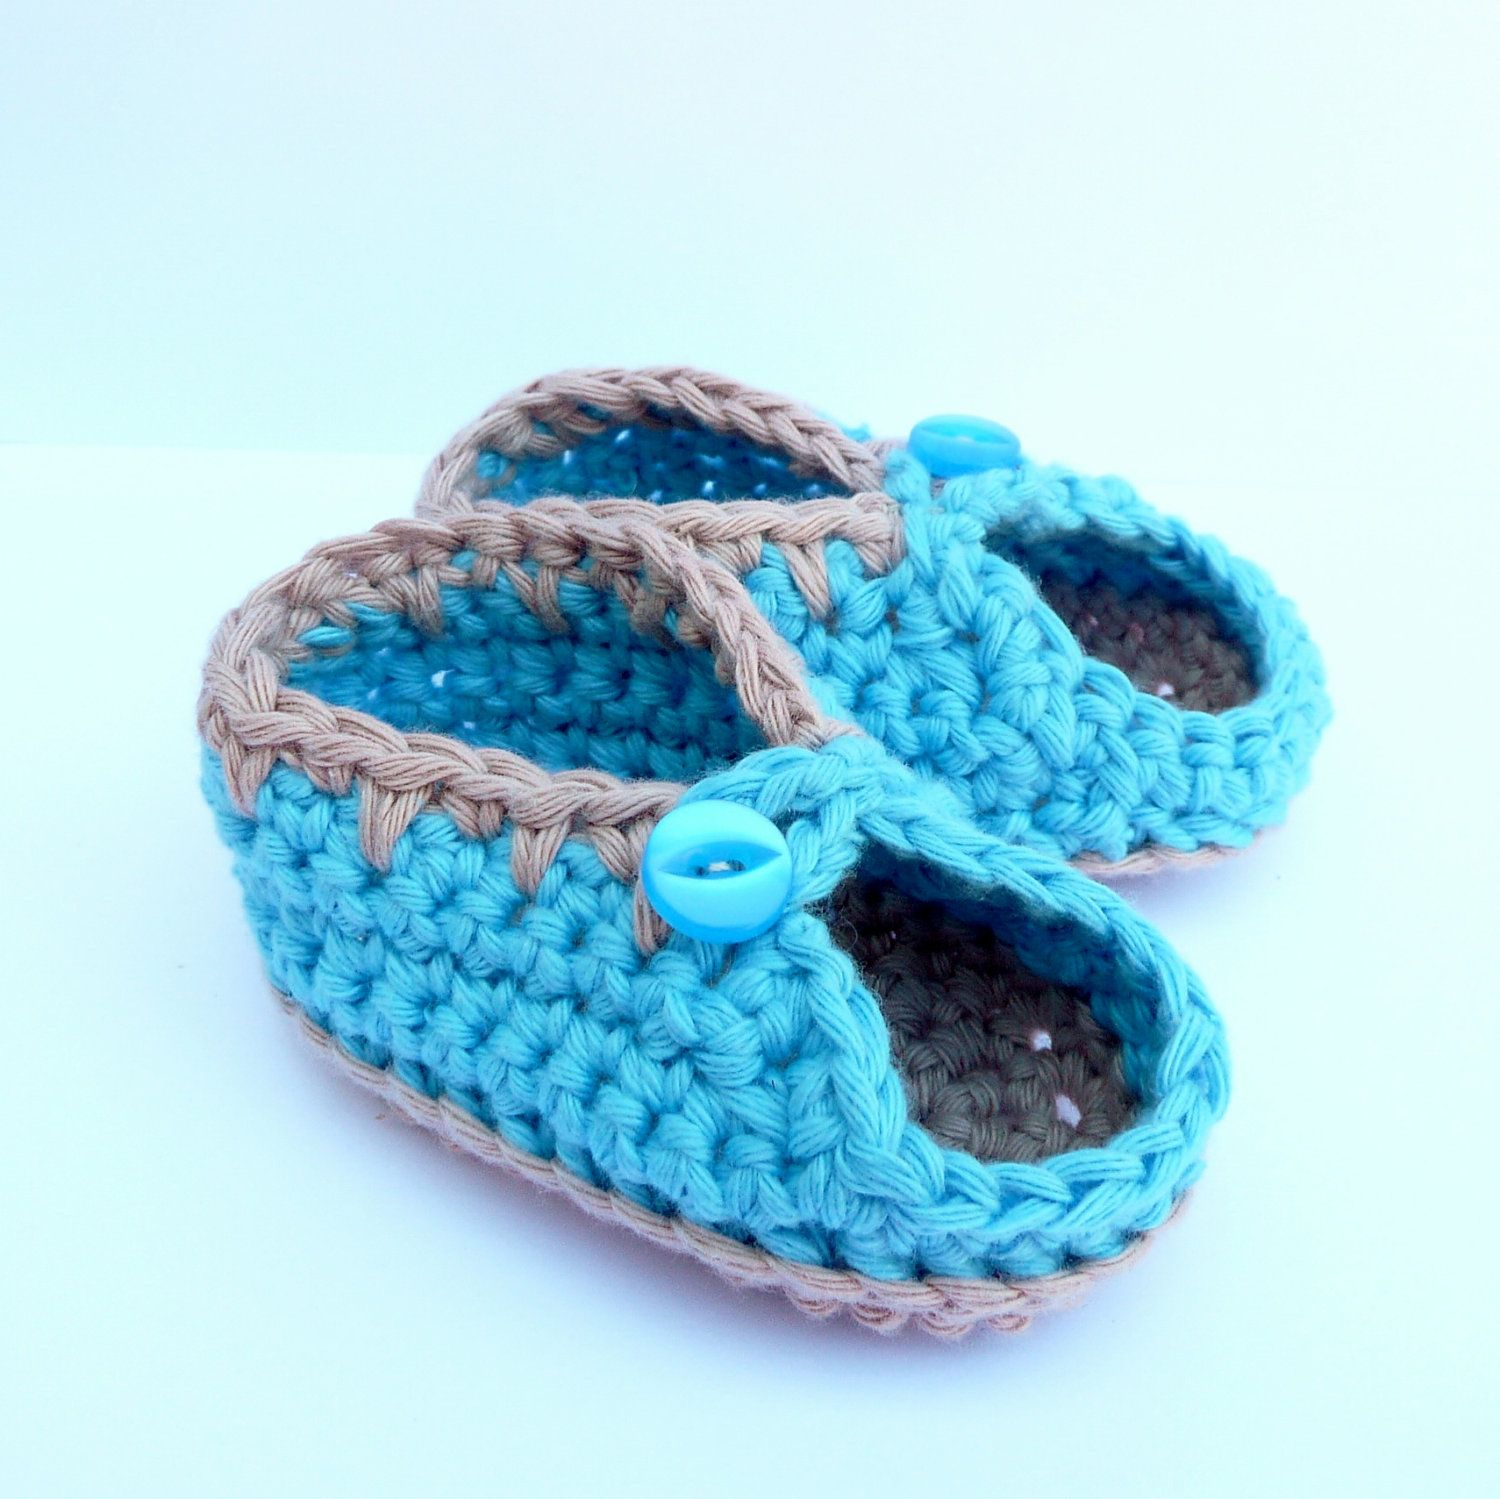 Baby sandals shoes crochet pattern open toe baby sandals 450 baby sandals shoes crochet pattern open toe baby sandals 450 via etsy bankloansurffo Image collections